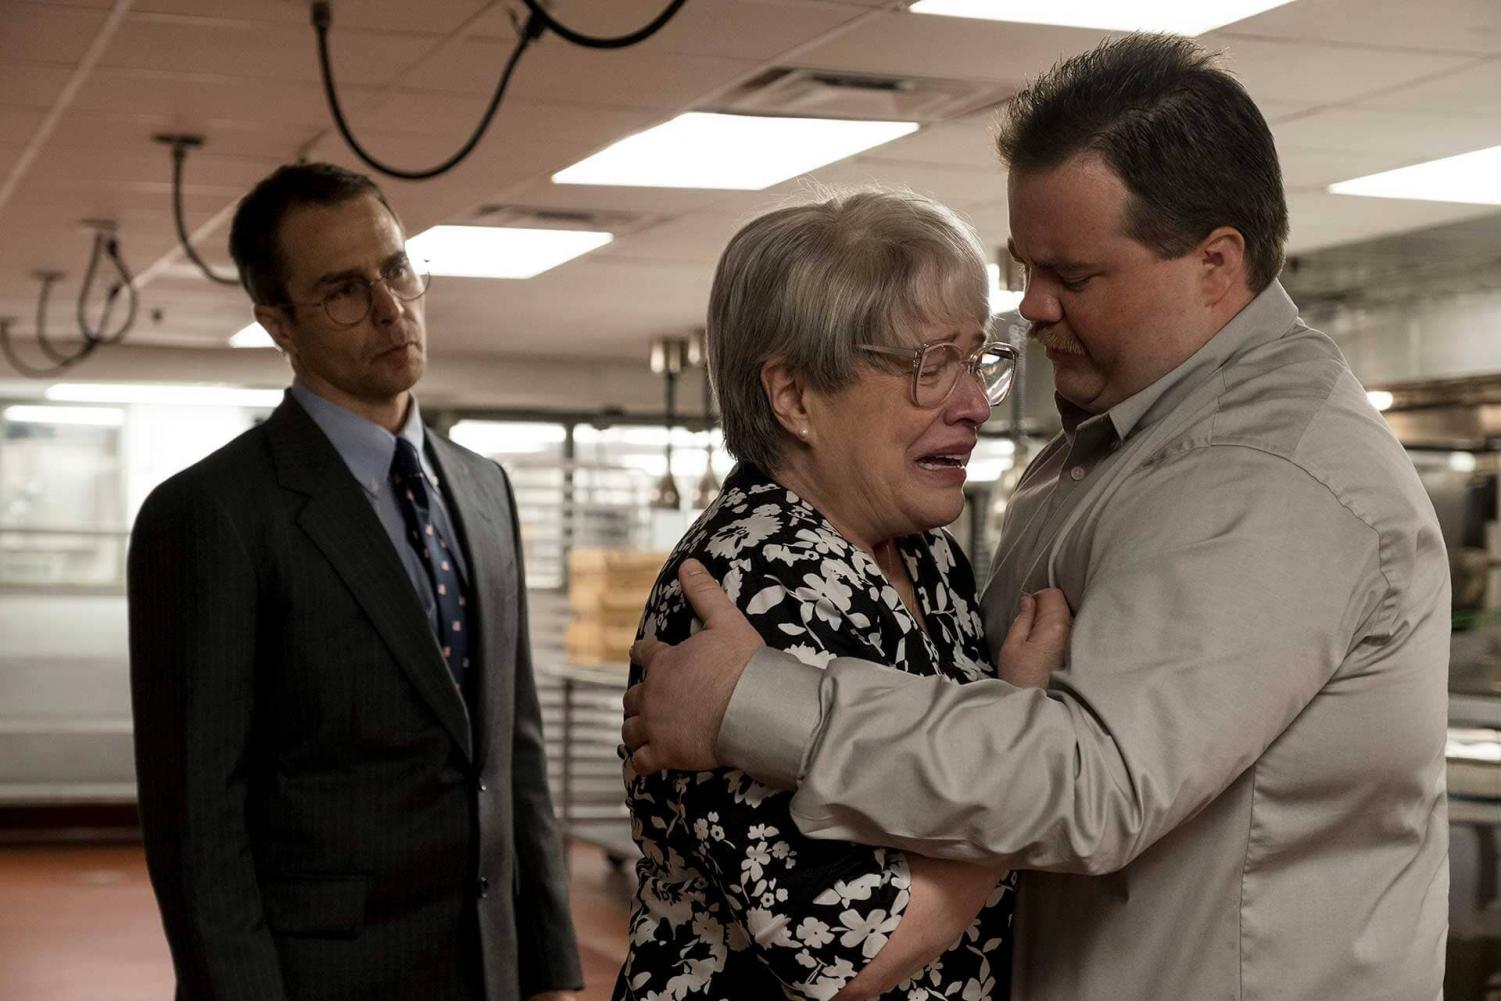 Pictured from left to right: Sam Rockwell, Kathy Bates, and Paul Walter Hauser.  Courtesy of Warner Bros.